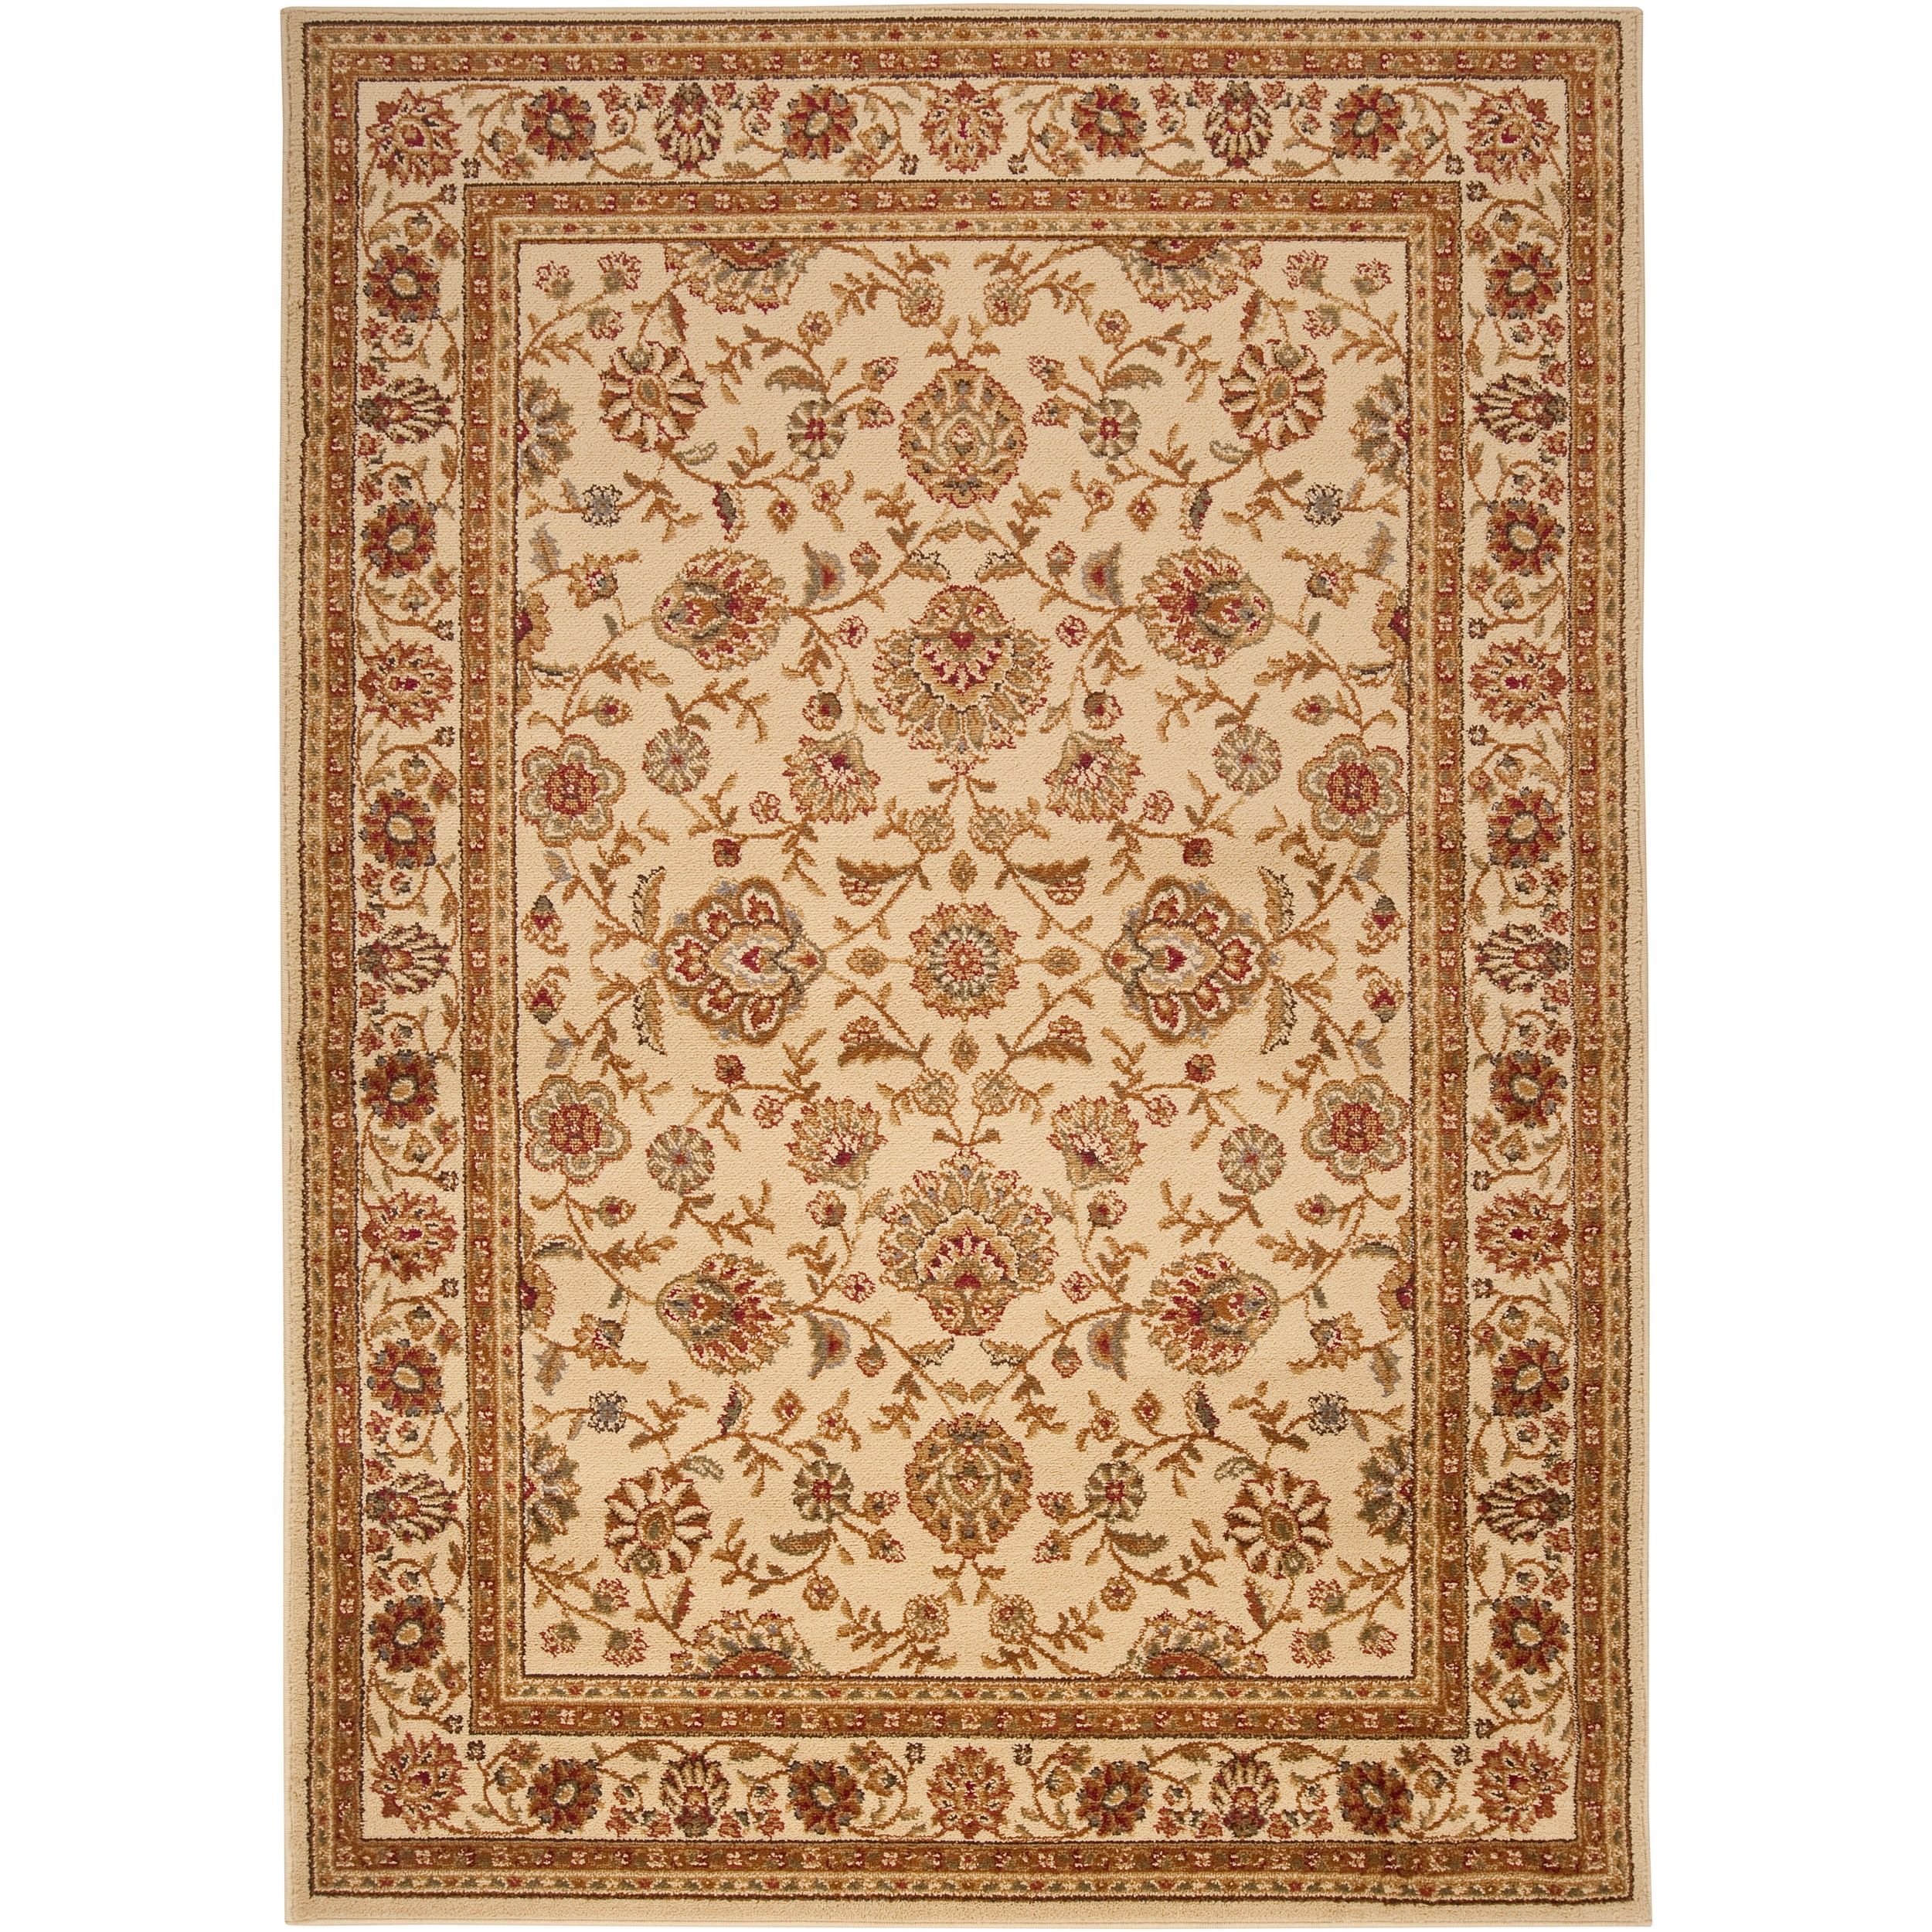 Woven White Helleno Olefin Rug (7u0026#39;10 x 10u0026#39;3) - Free Shipping Today - Overstock.com - 14151501